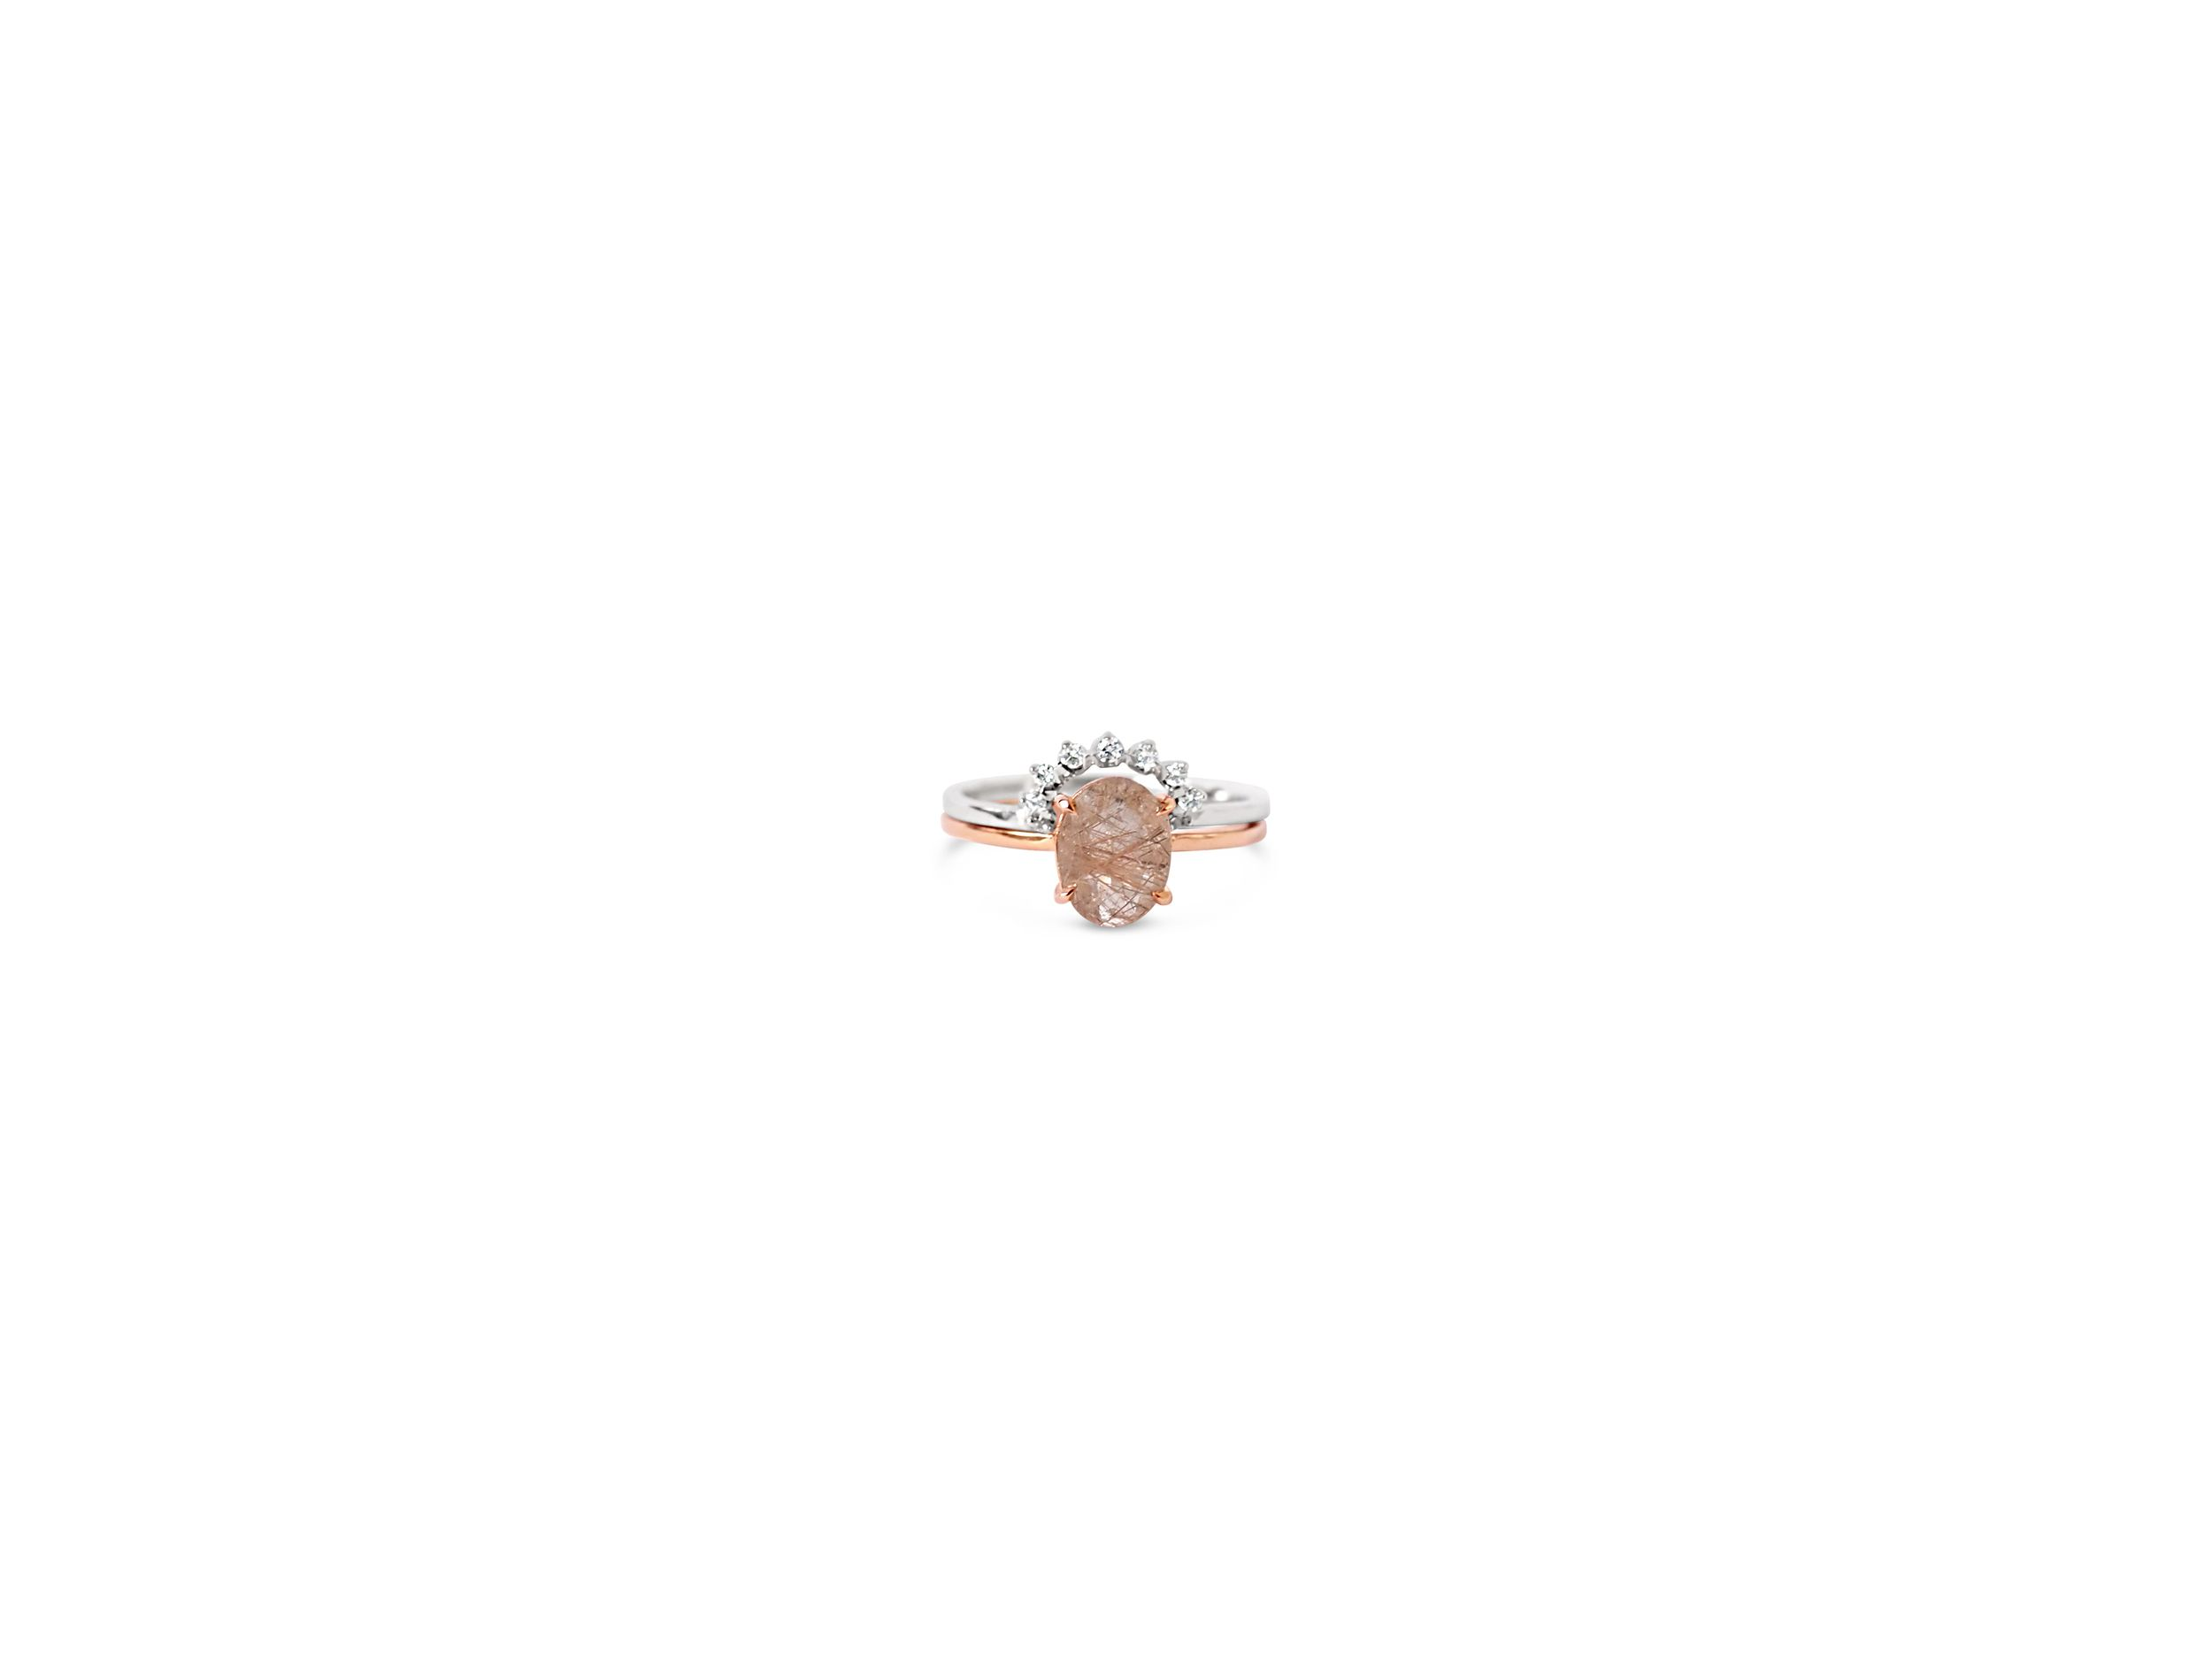 Oval quartz with crown Ring Natalie Marie Jewellery Oval cut